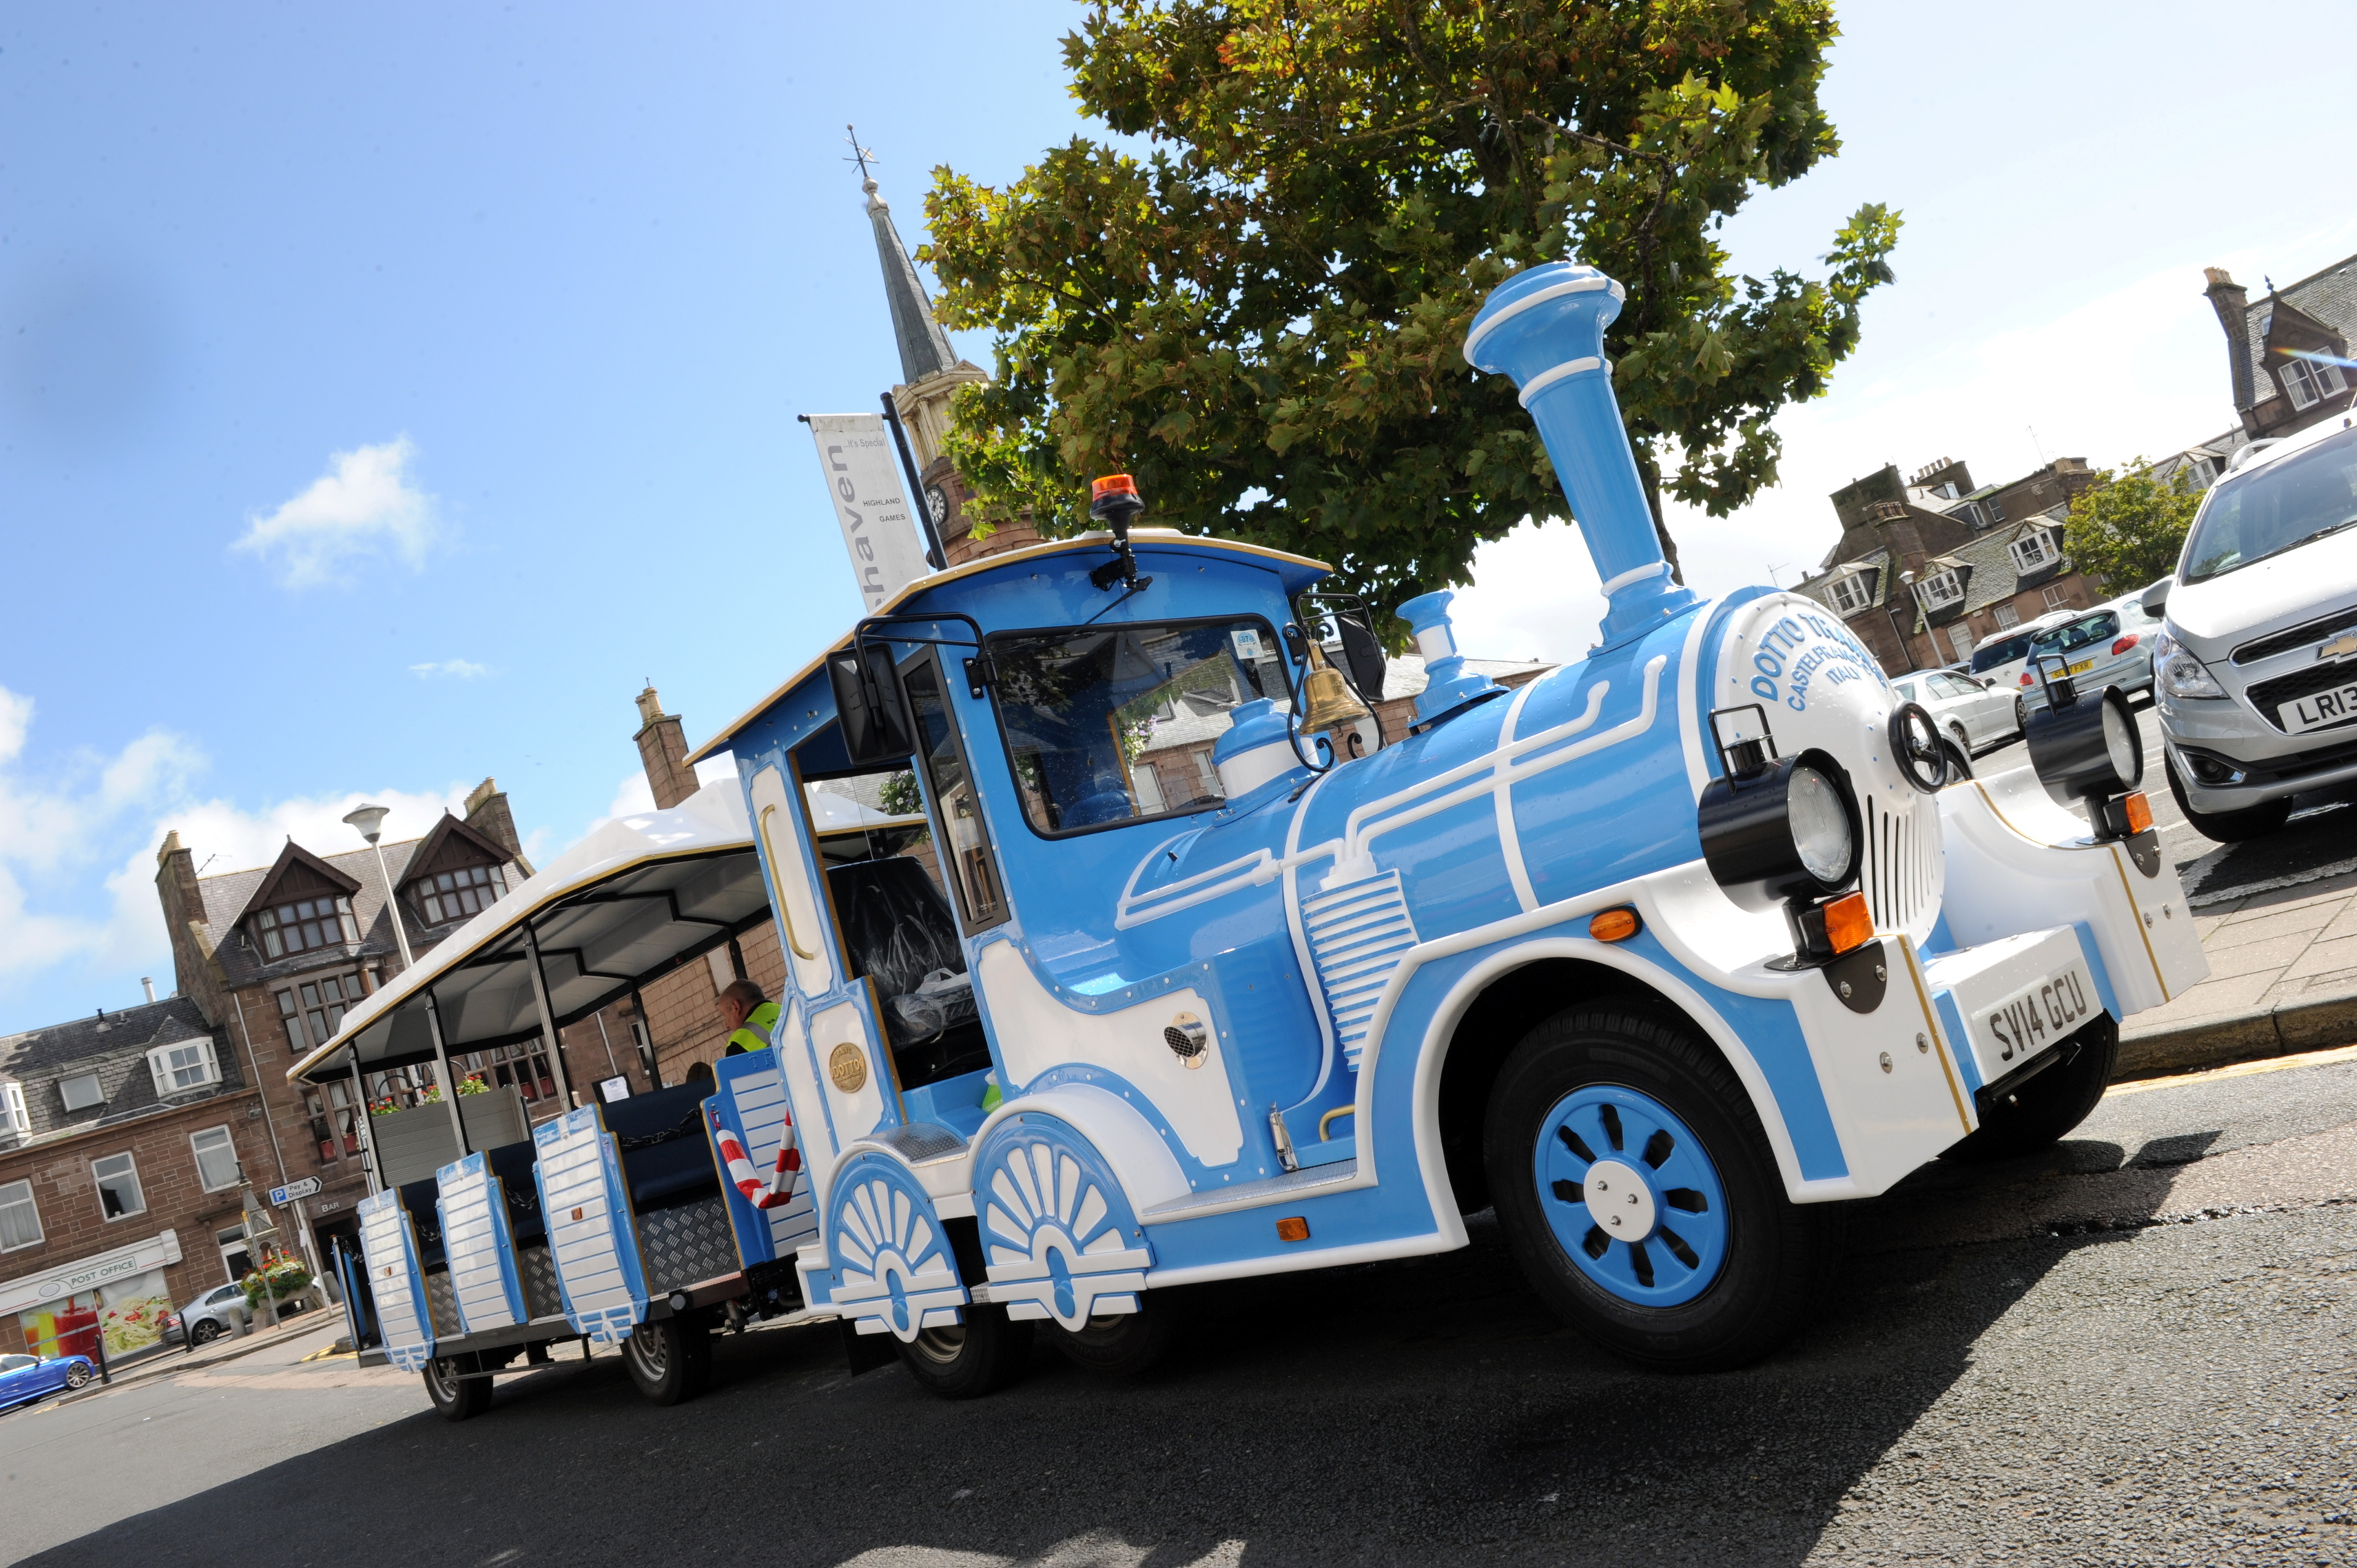 Stonehaven's land train has proved a great hit with visitors, and has carried 5,000 people this summer.